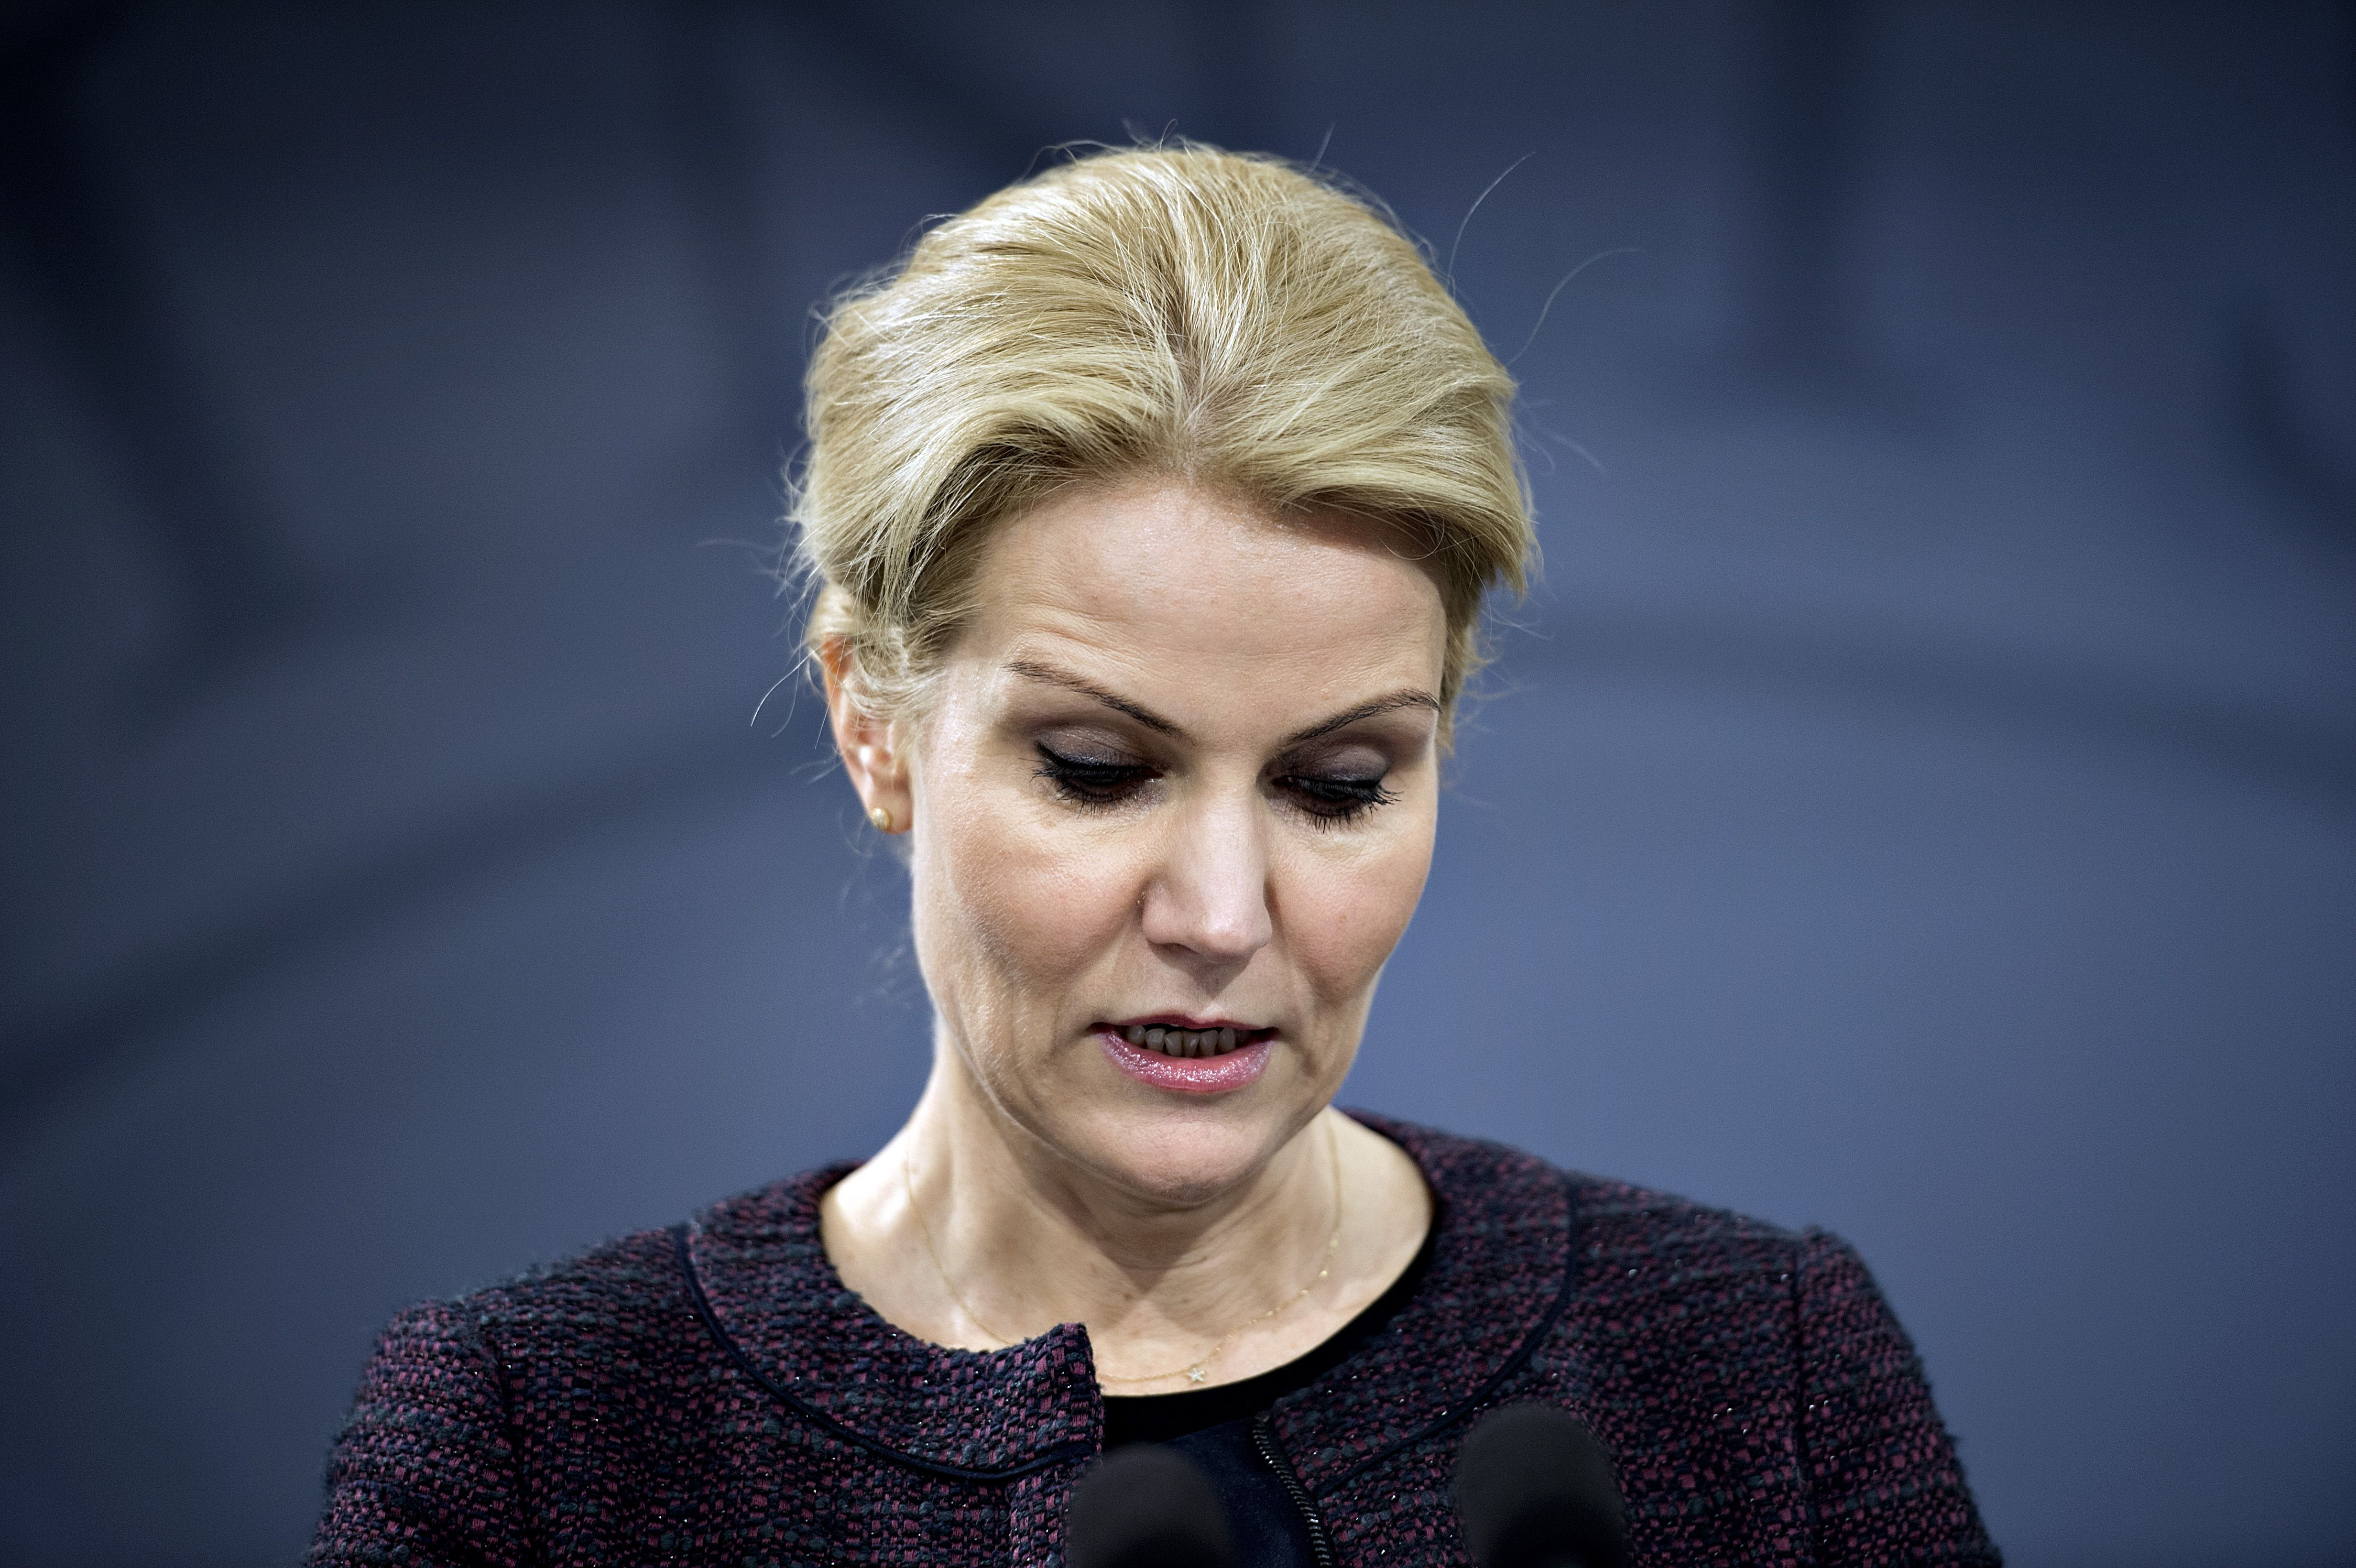 Danish Prime Minister Helle Thorning-Schmidt at a press conference on Jan. 30, 2014 at the Prime Minister's office in Copenhagen.